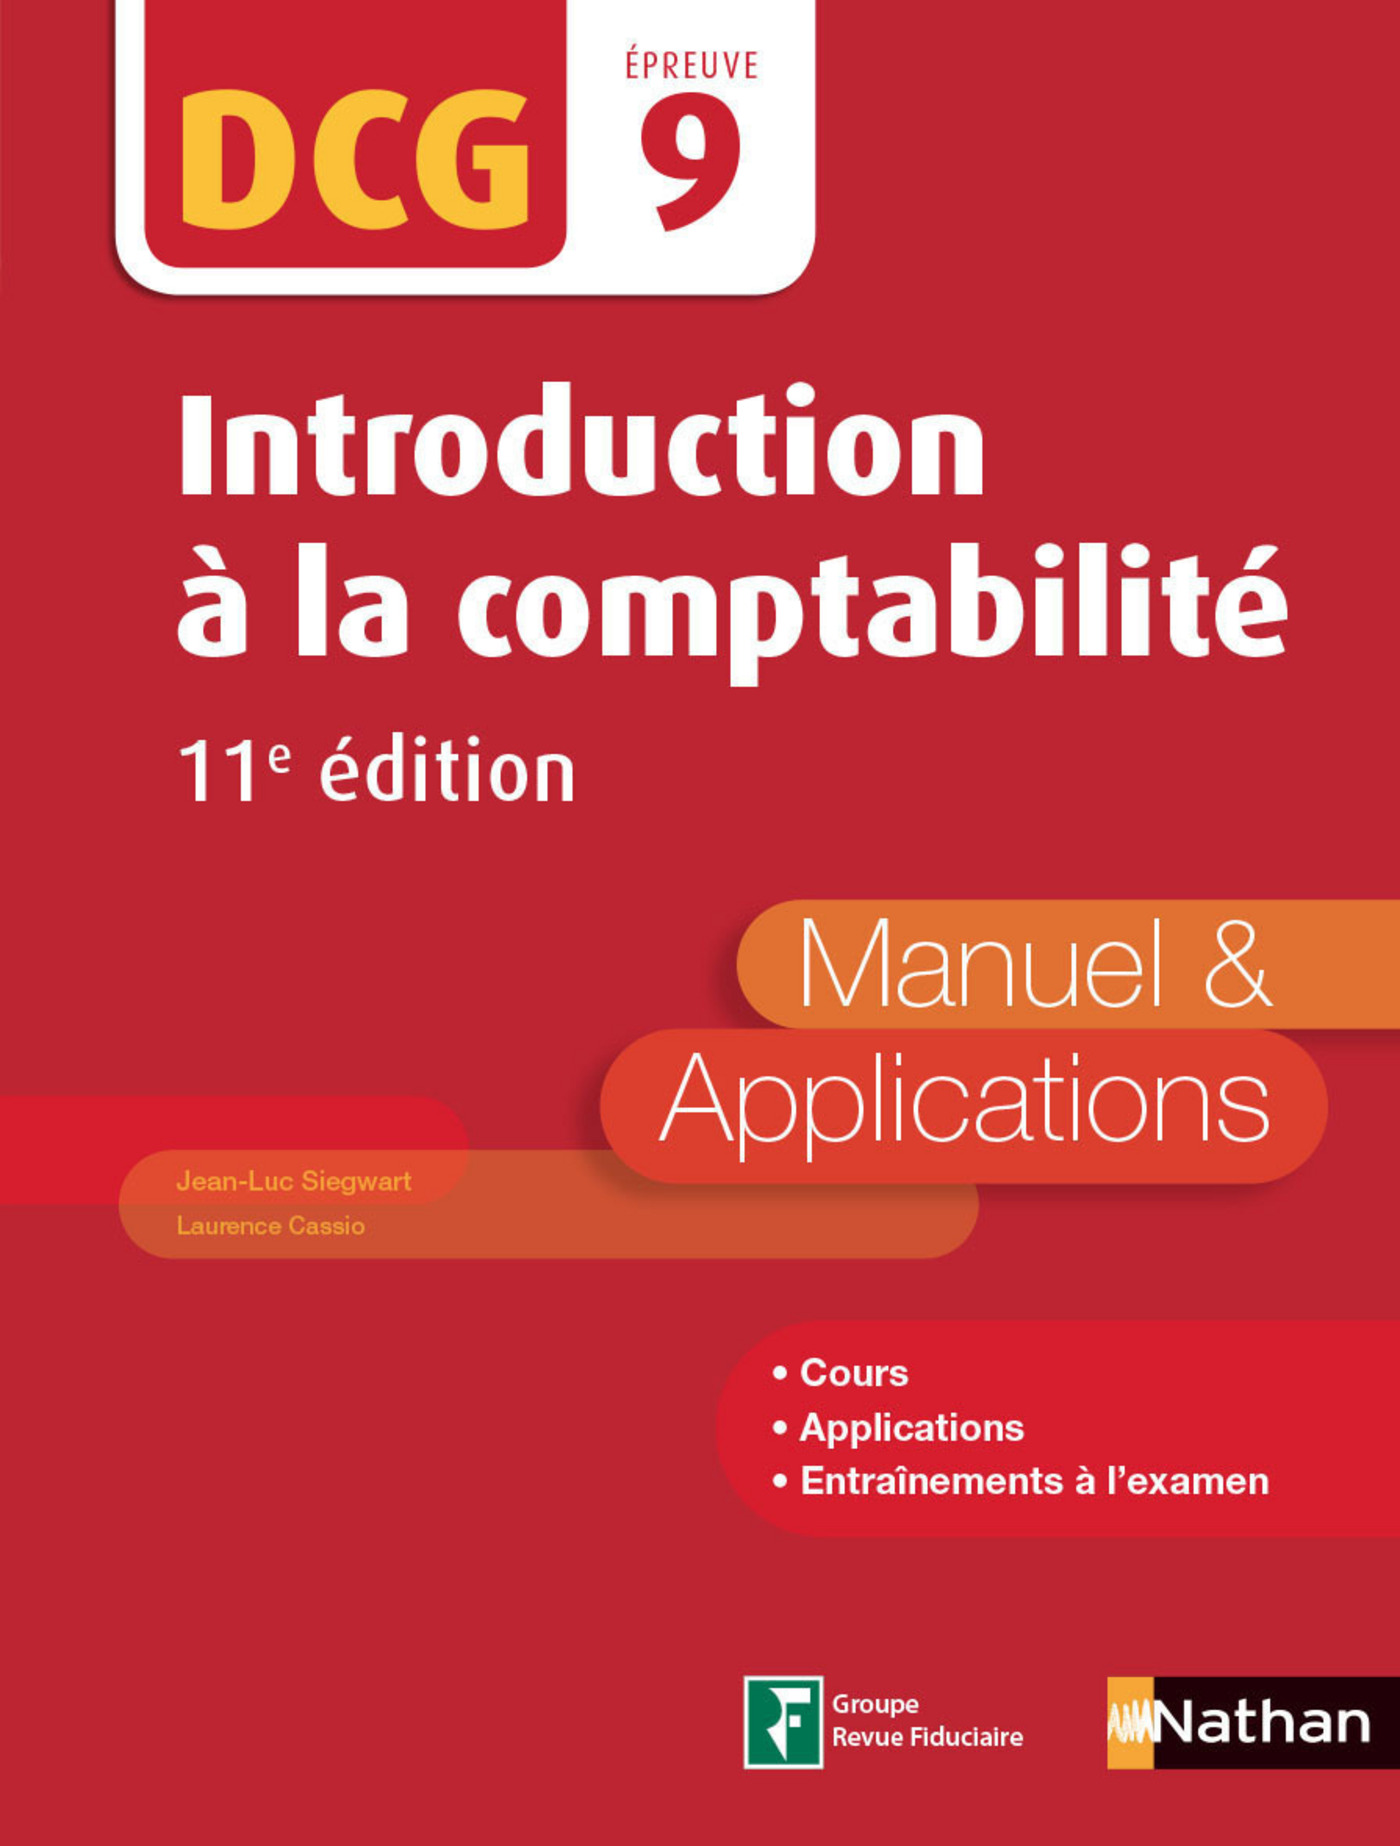 Introduction à la comptabilité - DCG 9 - Manuel et applications